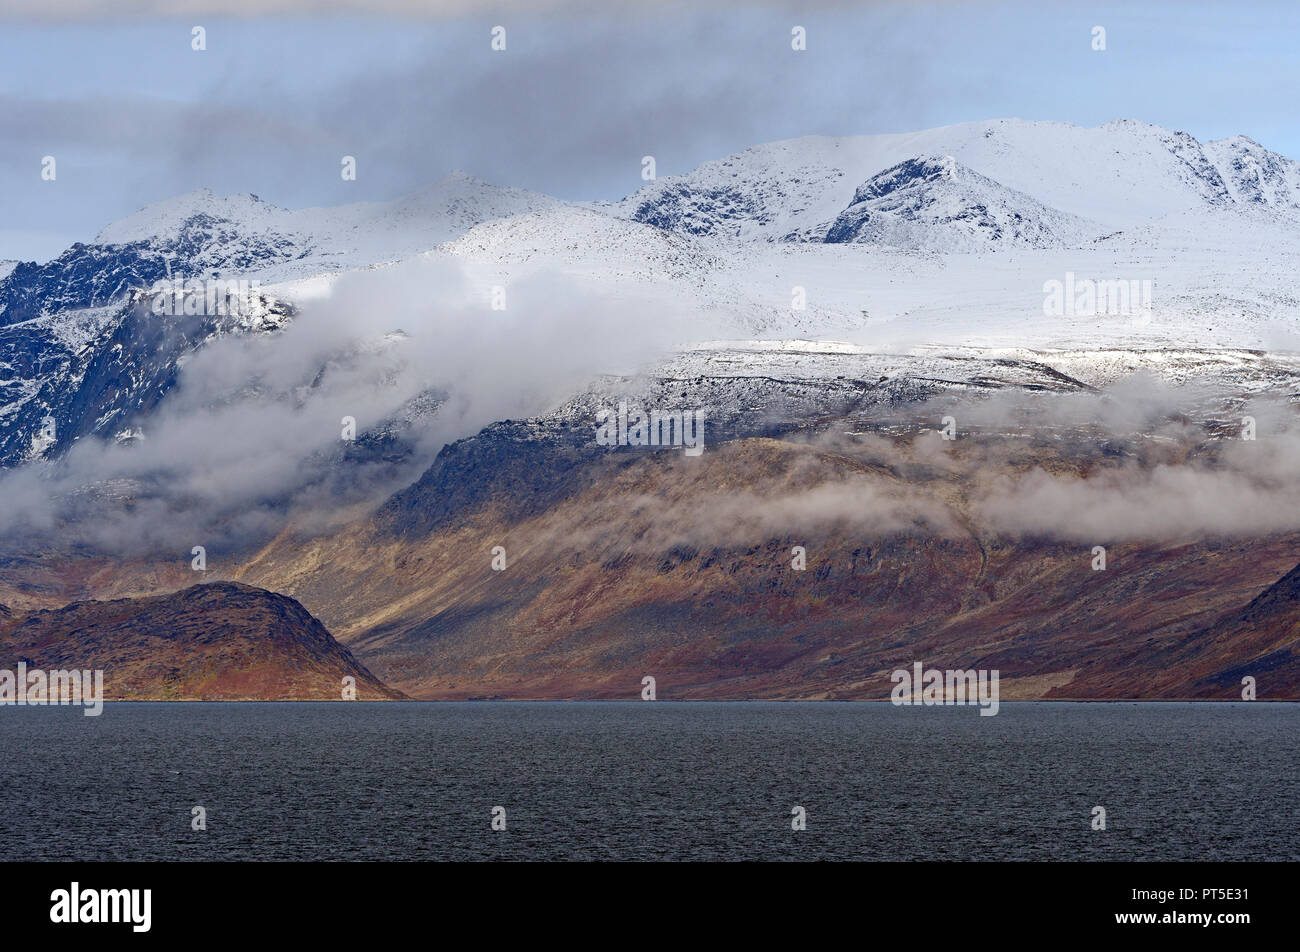 Dramatic Peaks on the Coast of Baffin Island pear Pangnirtung, Nunavut, Canada Stock Photo